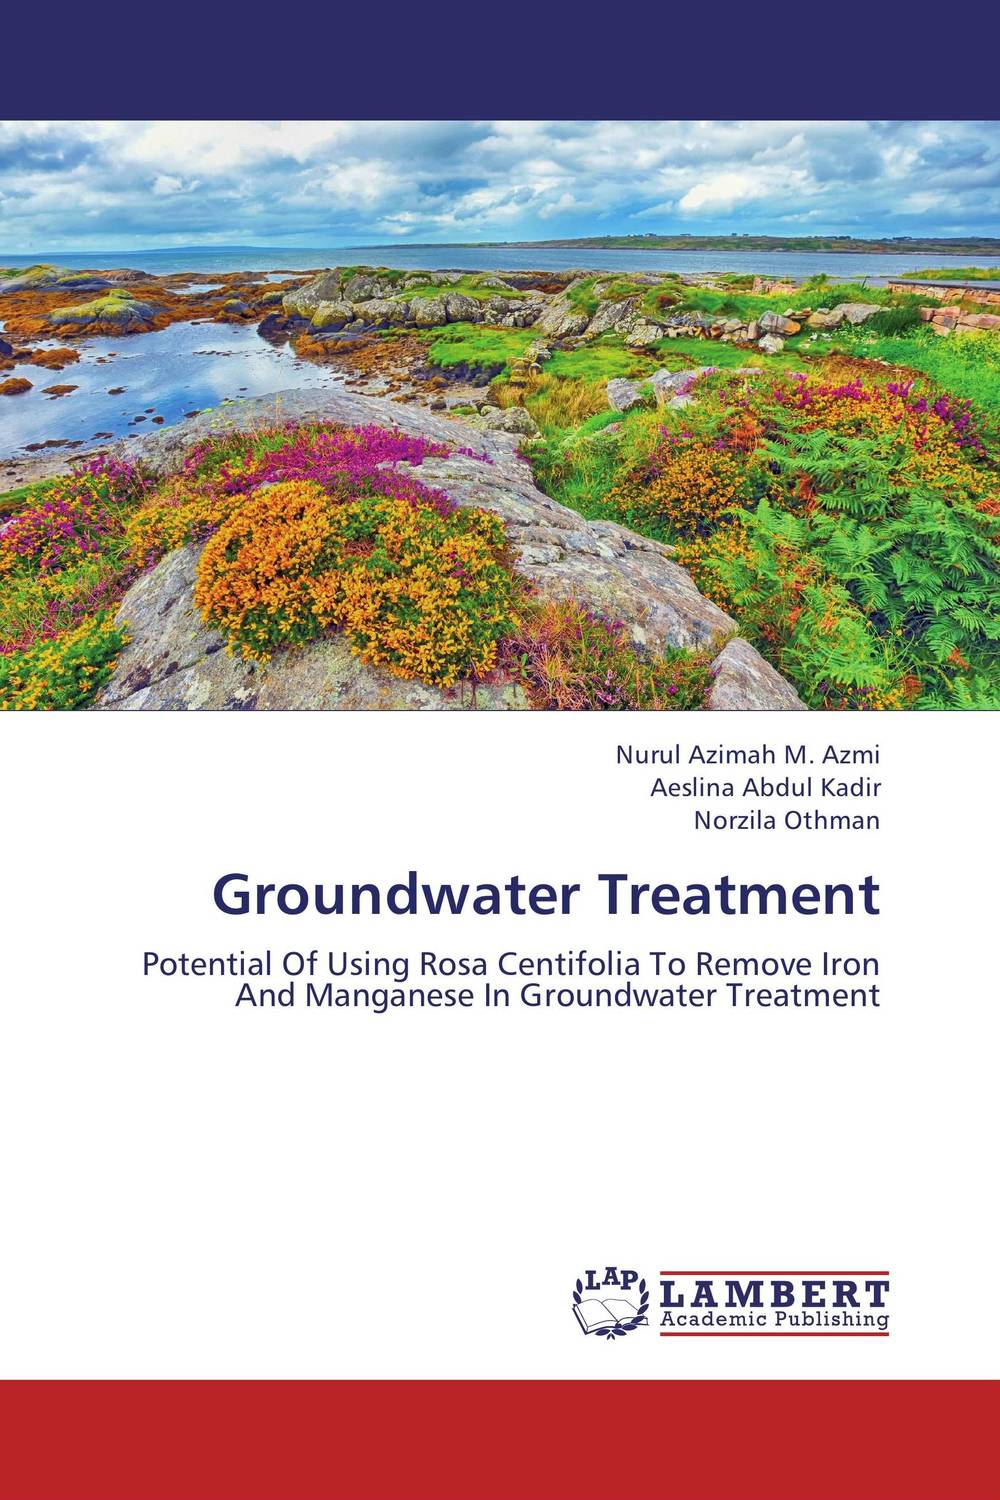 Groundwater Treatment nicholas p cheremisinoff groundwater remediation and treatment technologies